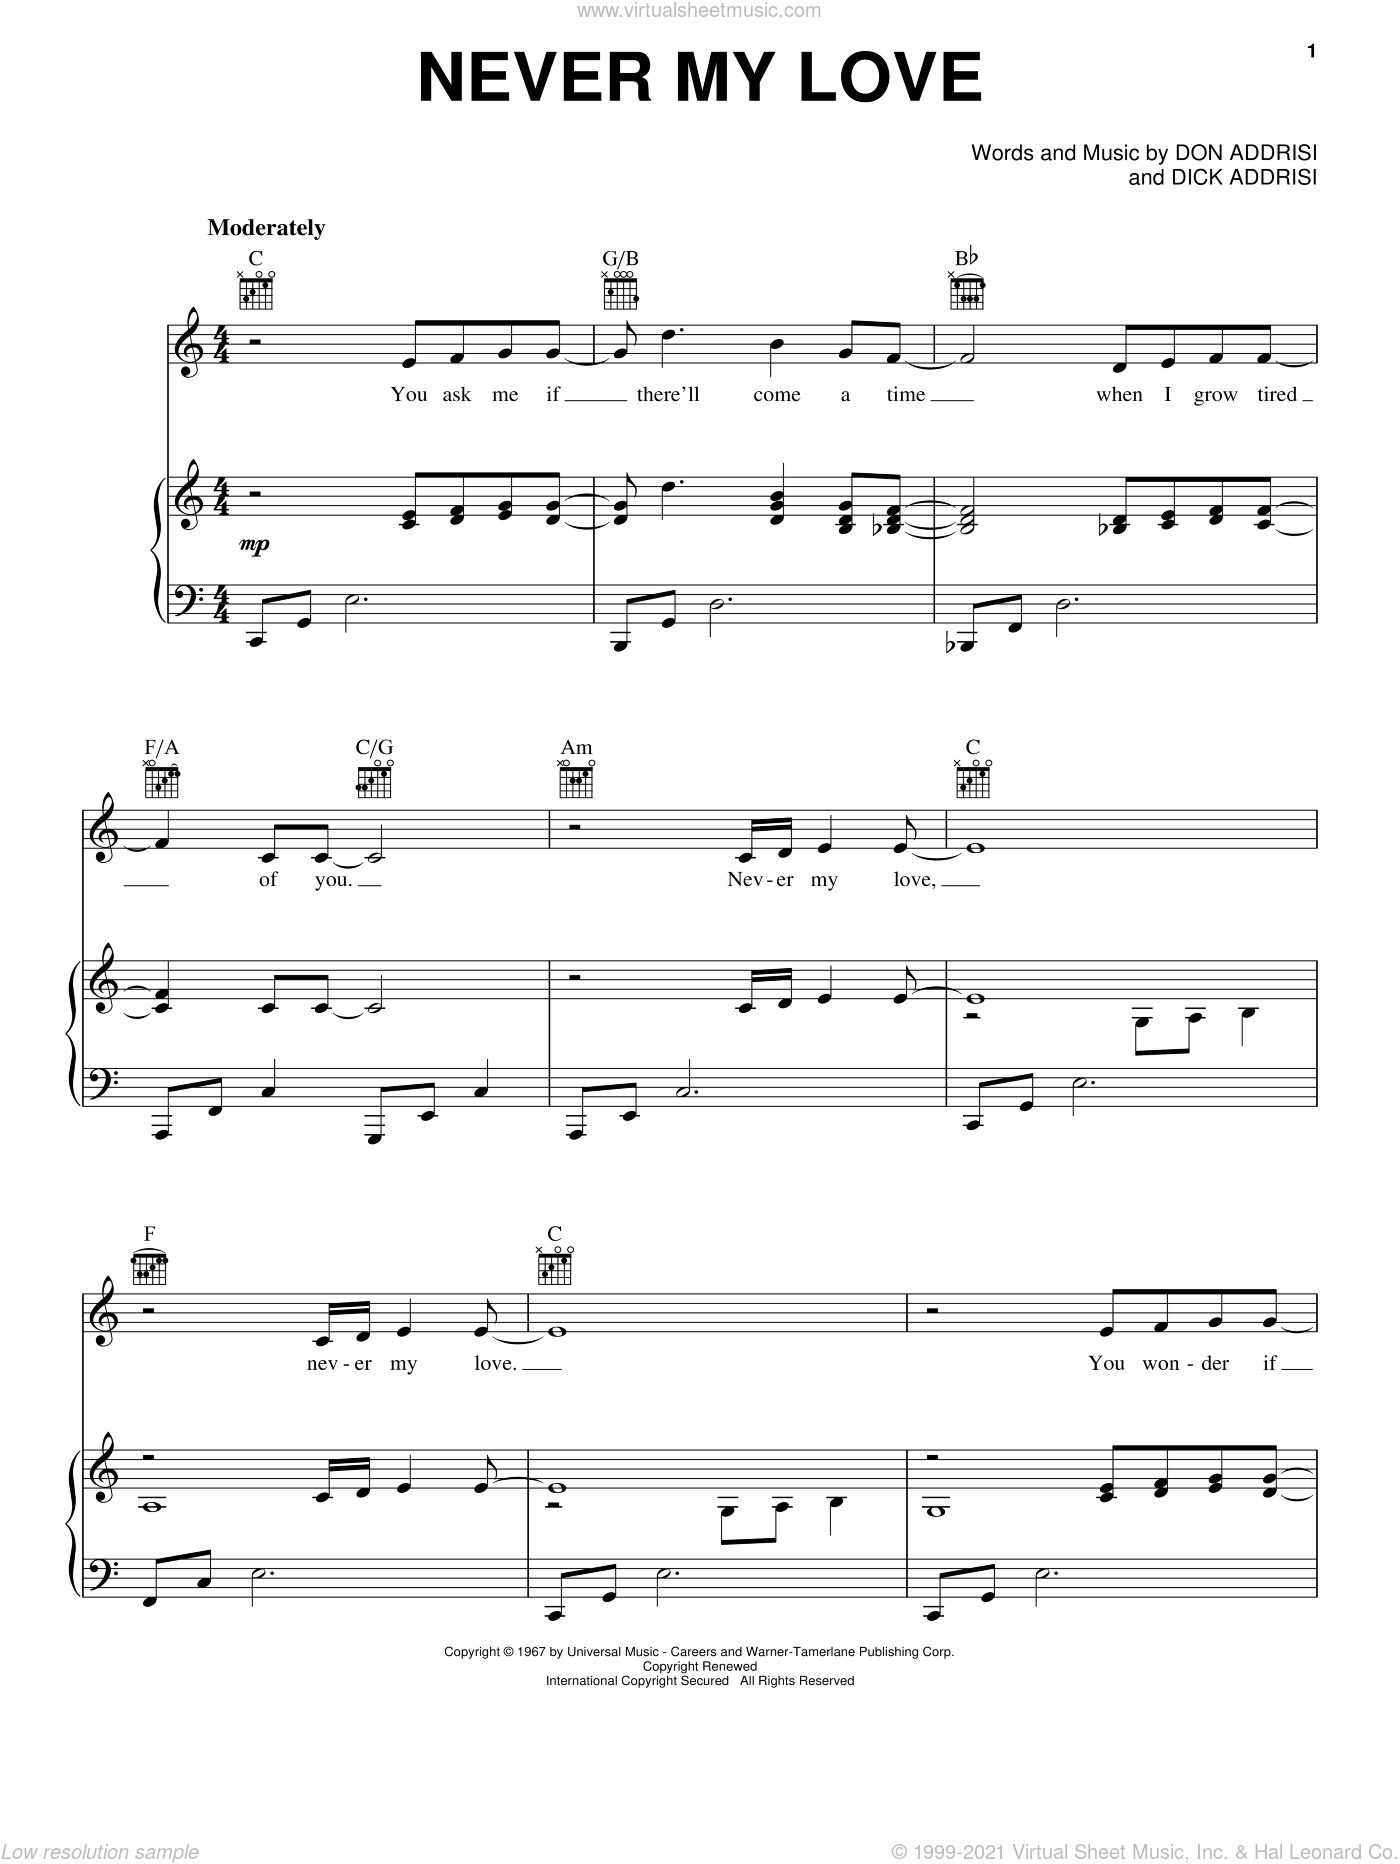 Never My Love sheet music for voice, piano or guitar by The Association, Blue Swede, The Fifth Dimension, Dick Addrisi and Don Addrisi, wedding score, intermediate skill level